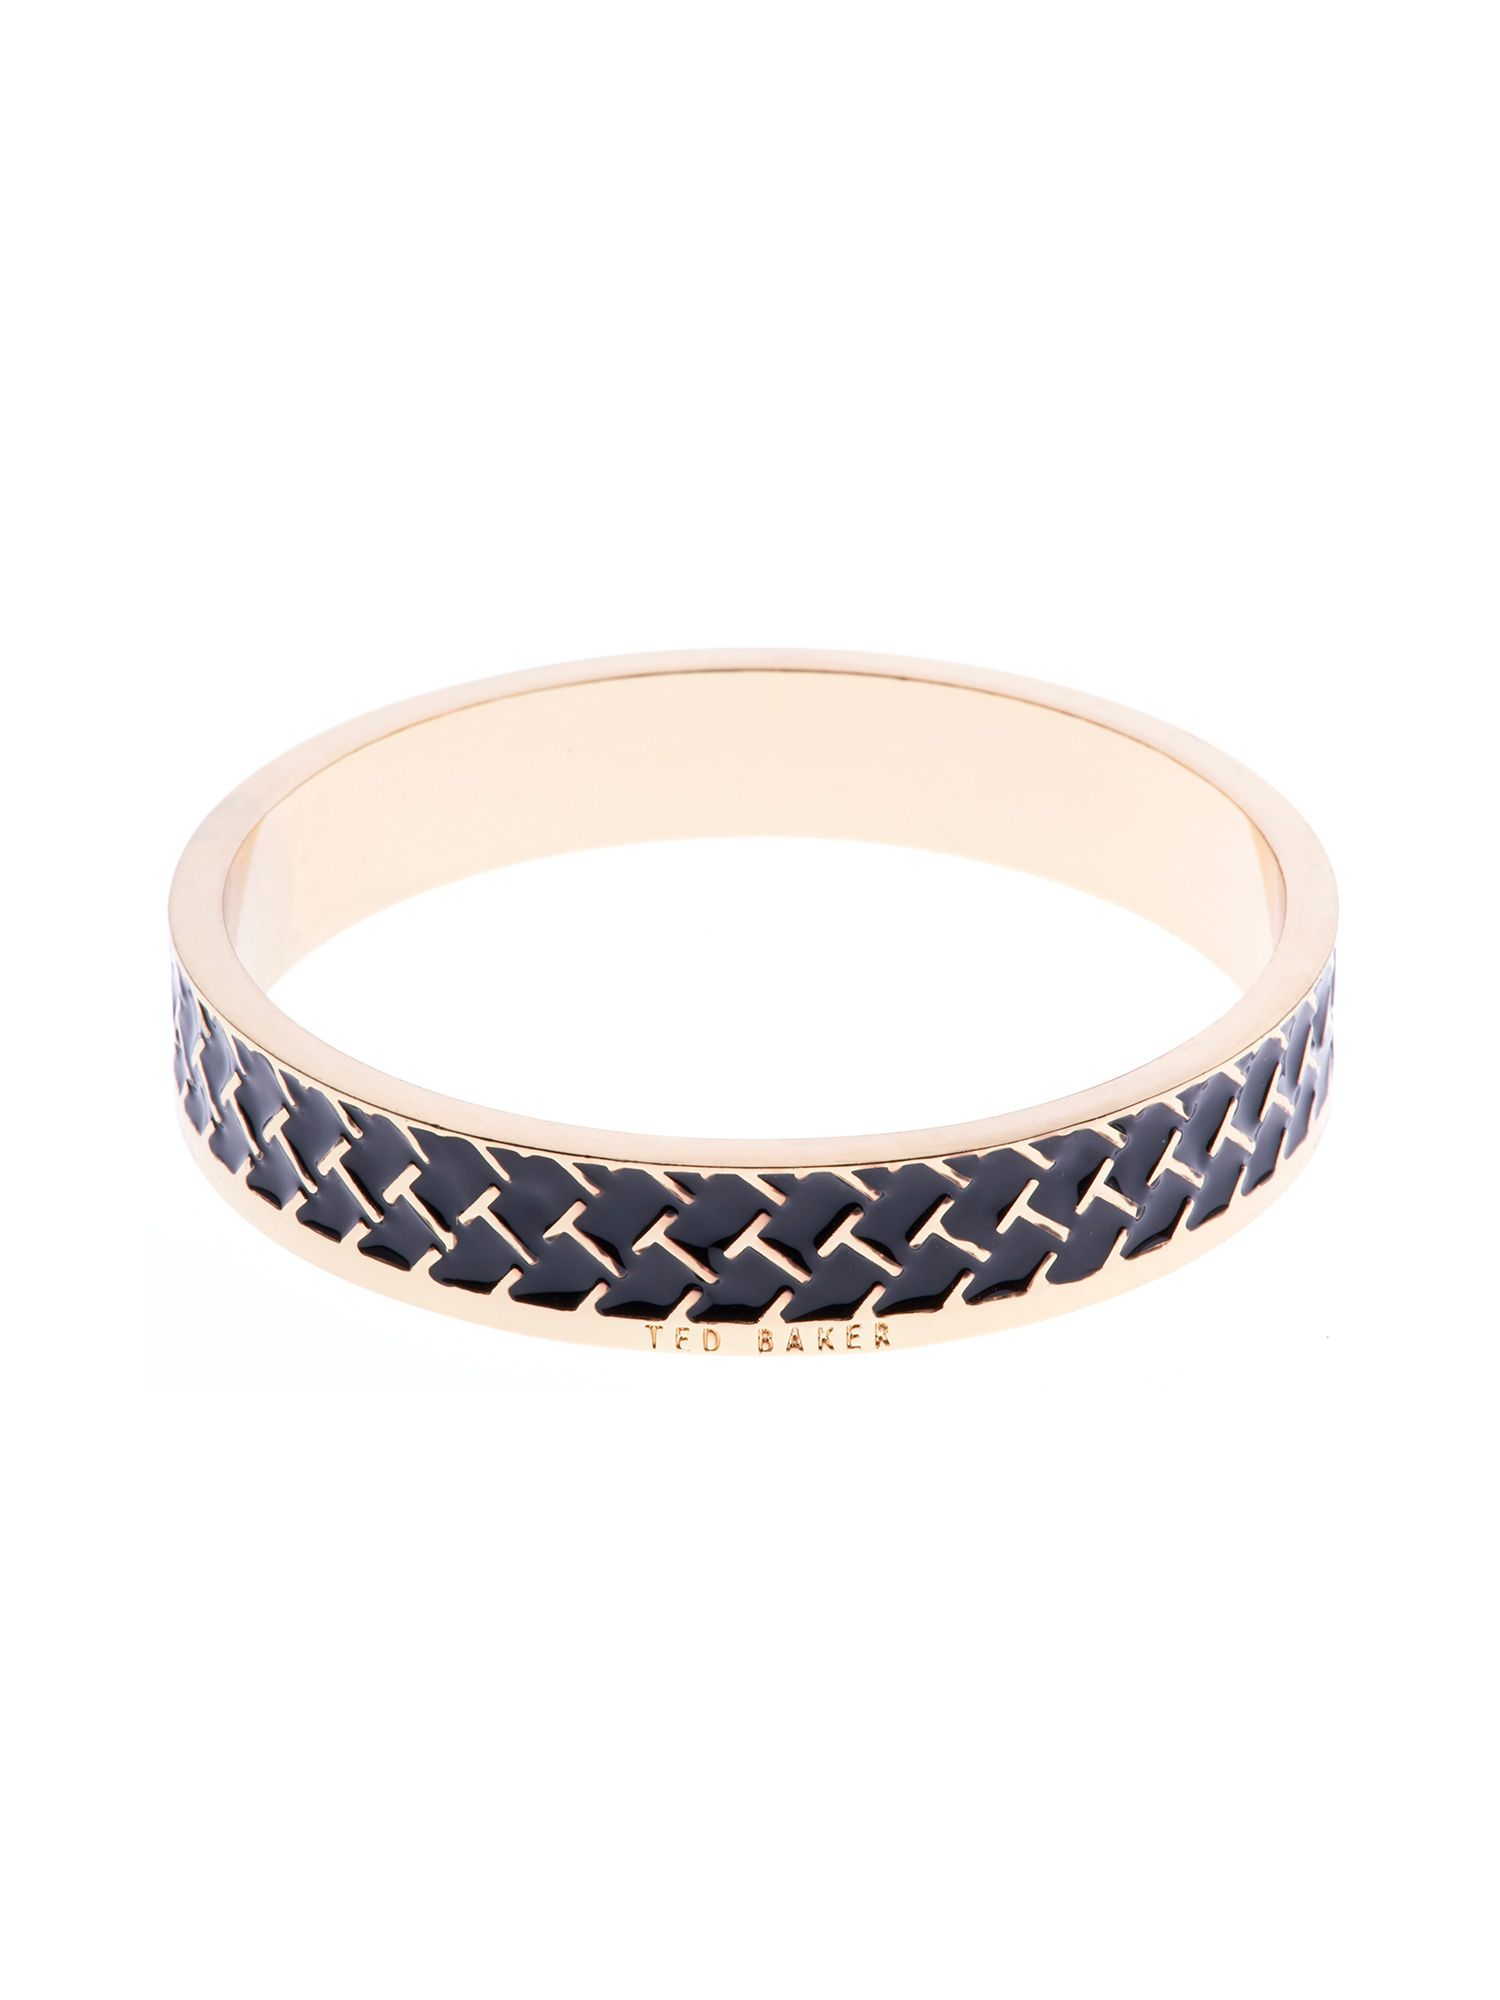 Clowi t pattern enamel bangle